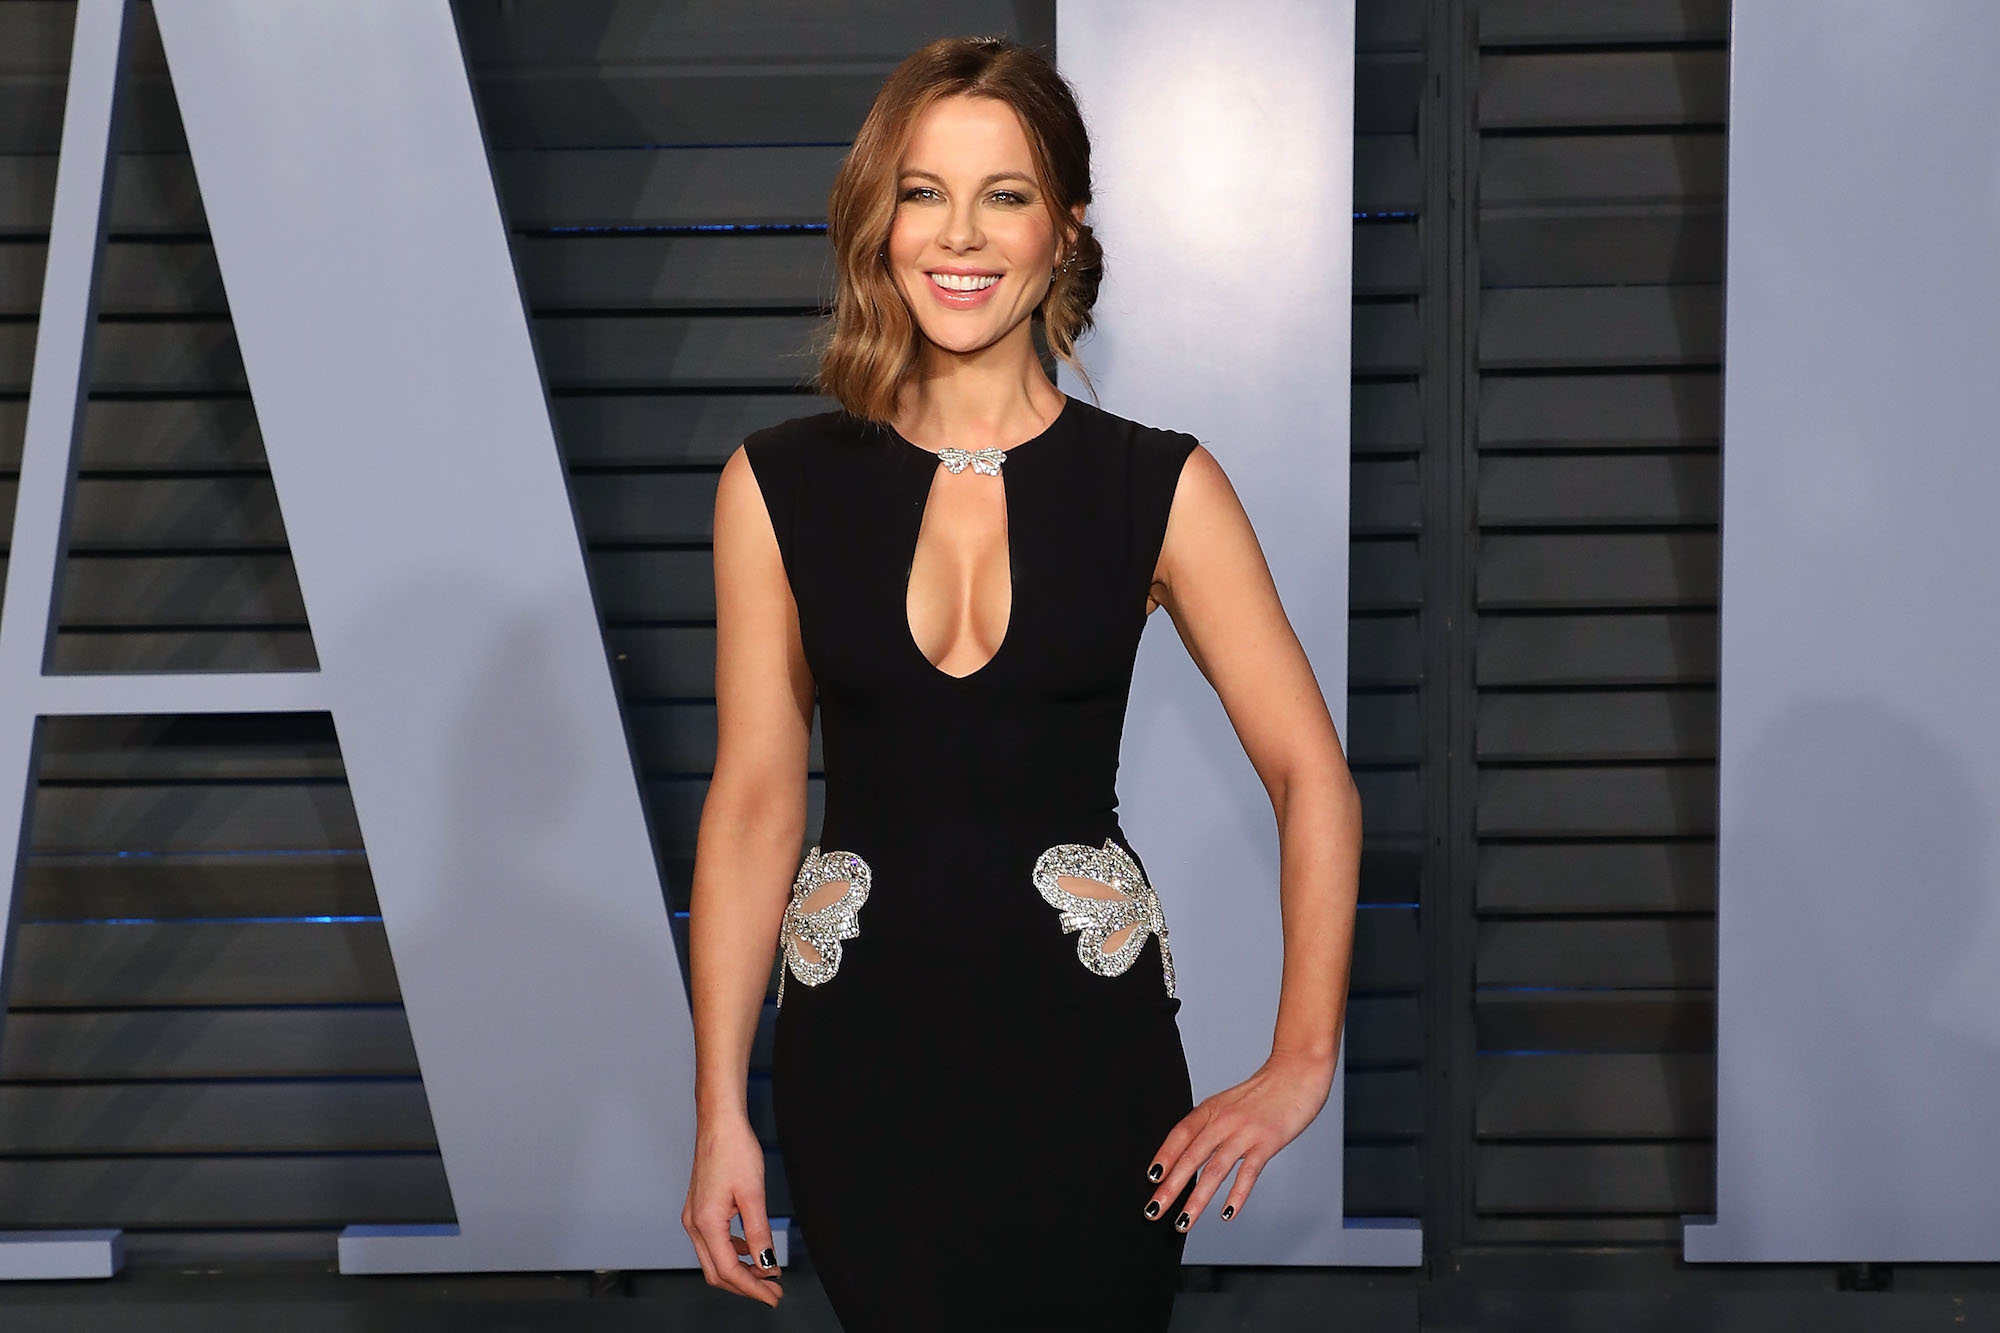 Kate Beckinsale lead